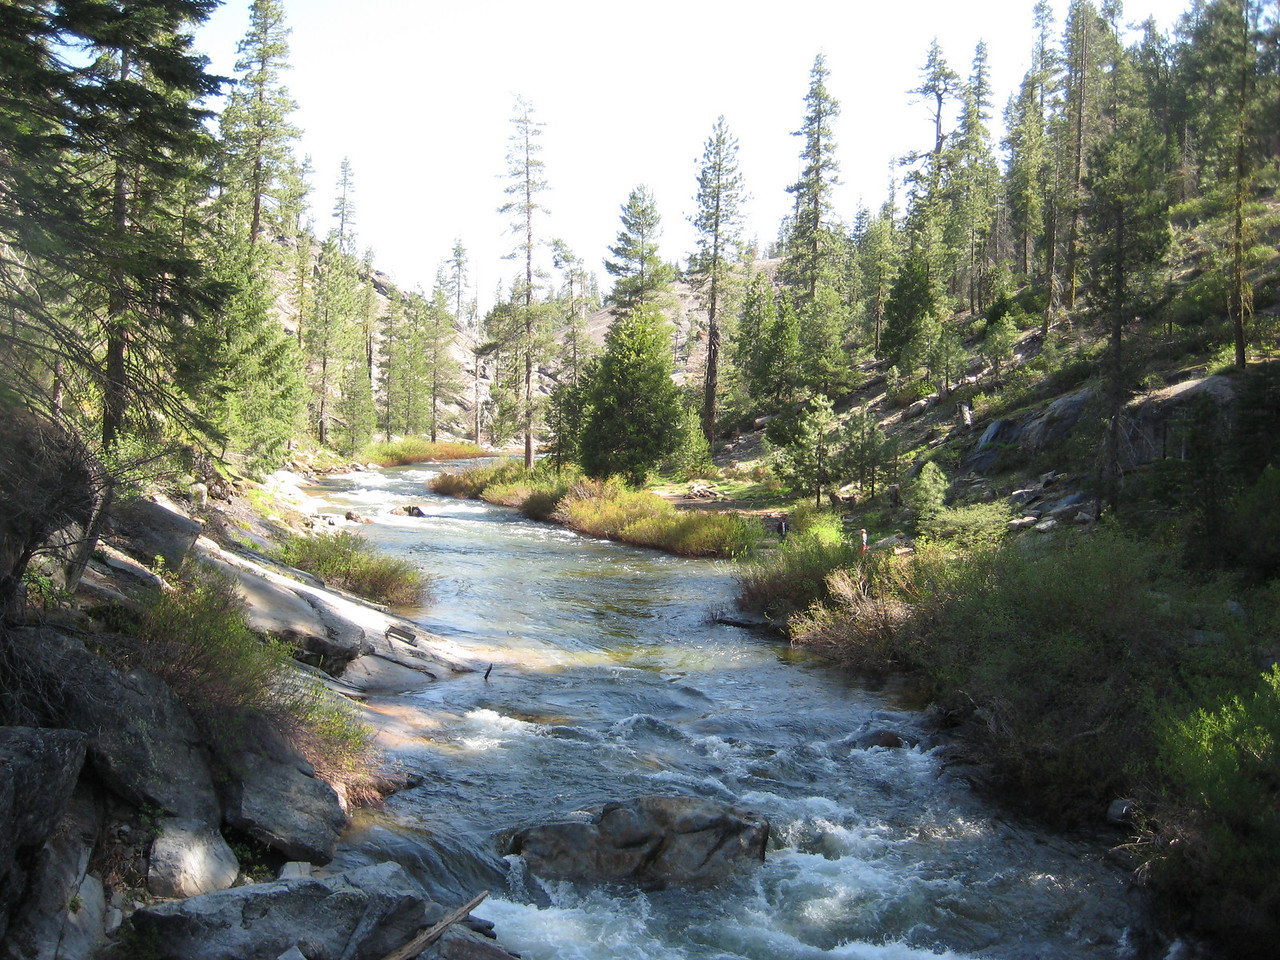 The upper Clavey River.